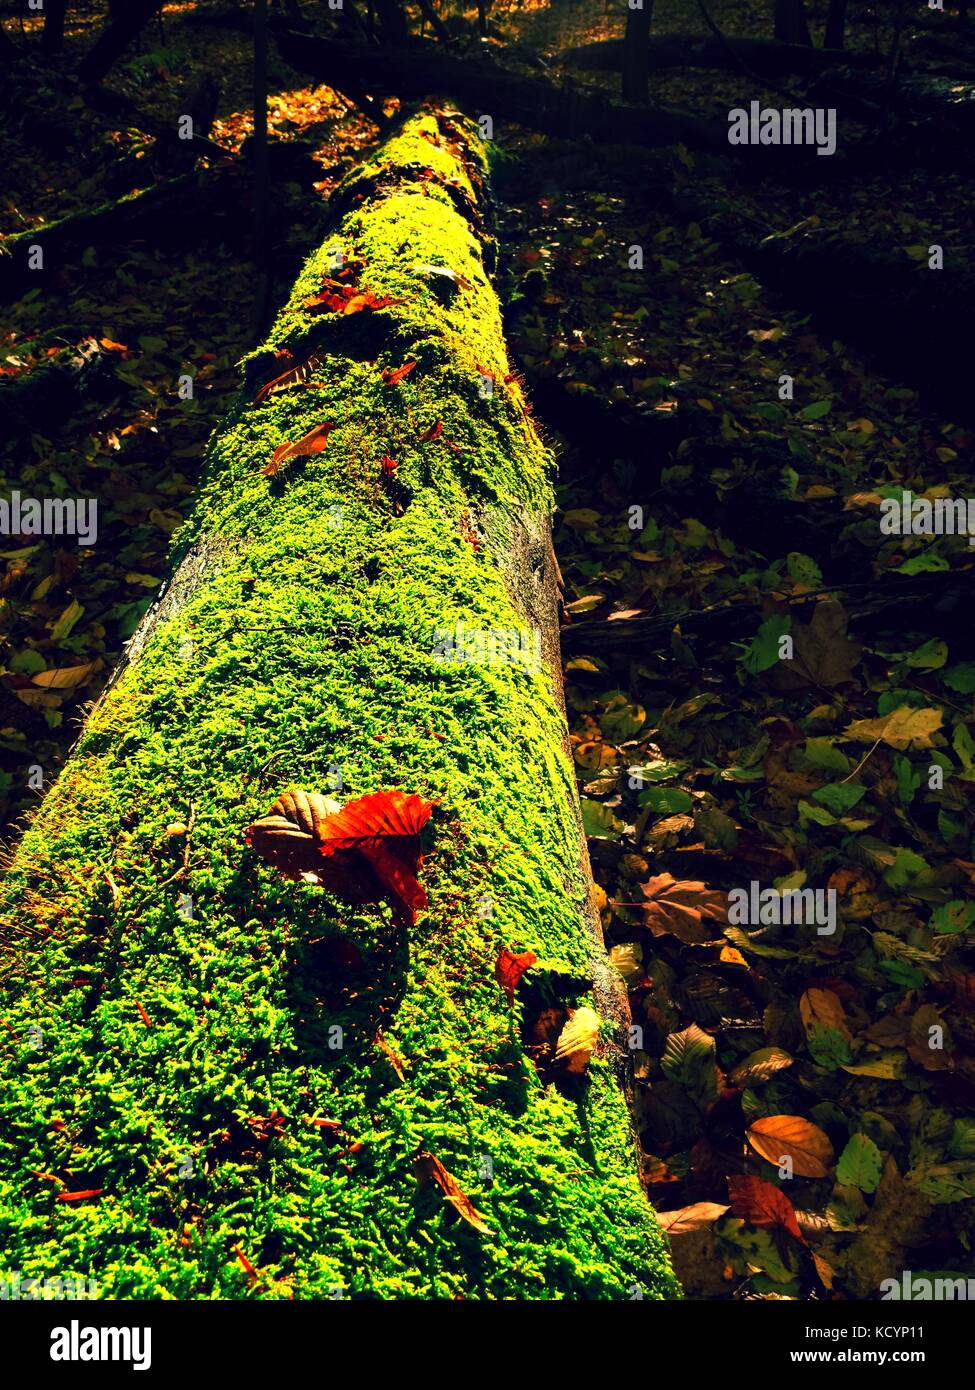 Mysterious wild muschroom in lighting forest. Slim stalk fallen leaf on cap with surreal light. Moss and fairytale mushroom & Mysterious wild muschroom in lighting forest. Slim stalk fallen ...